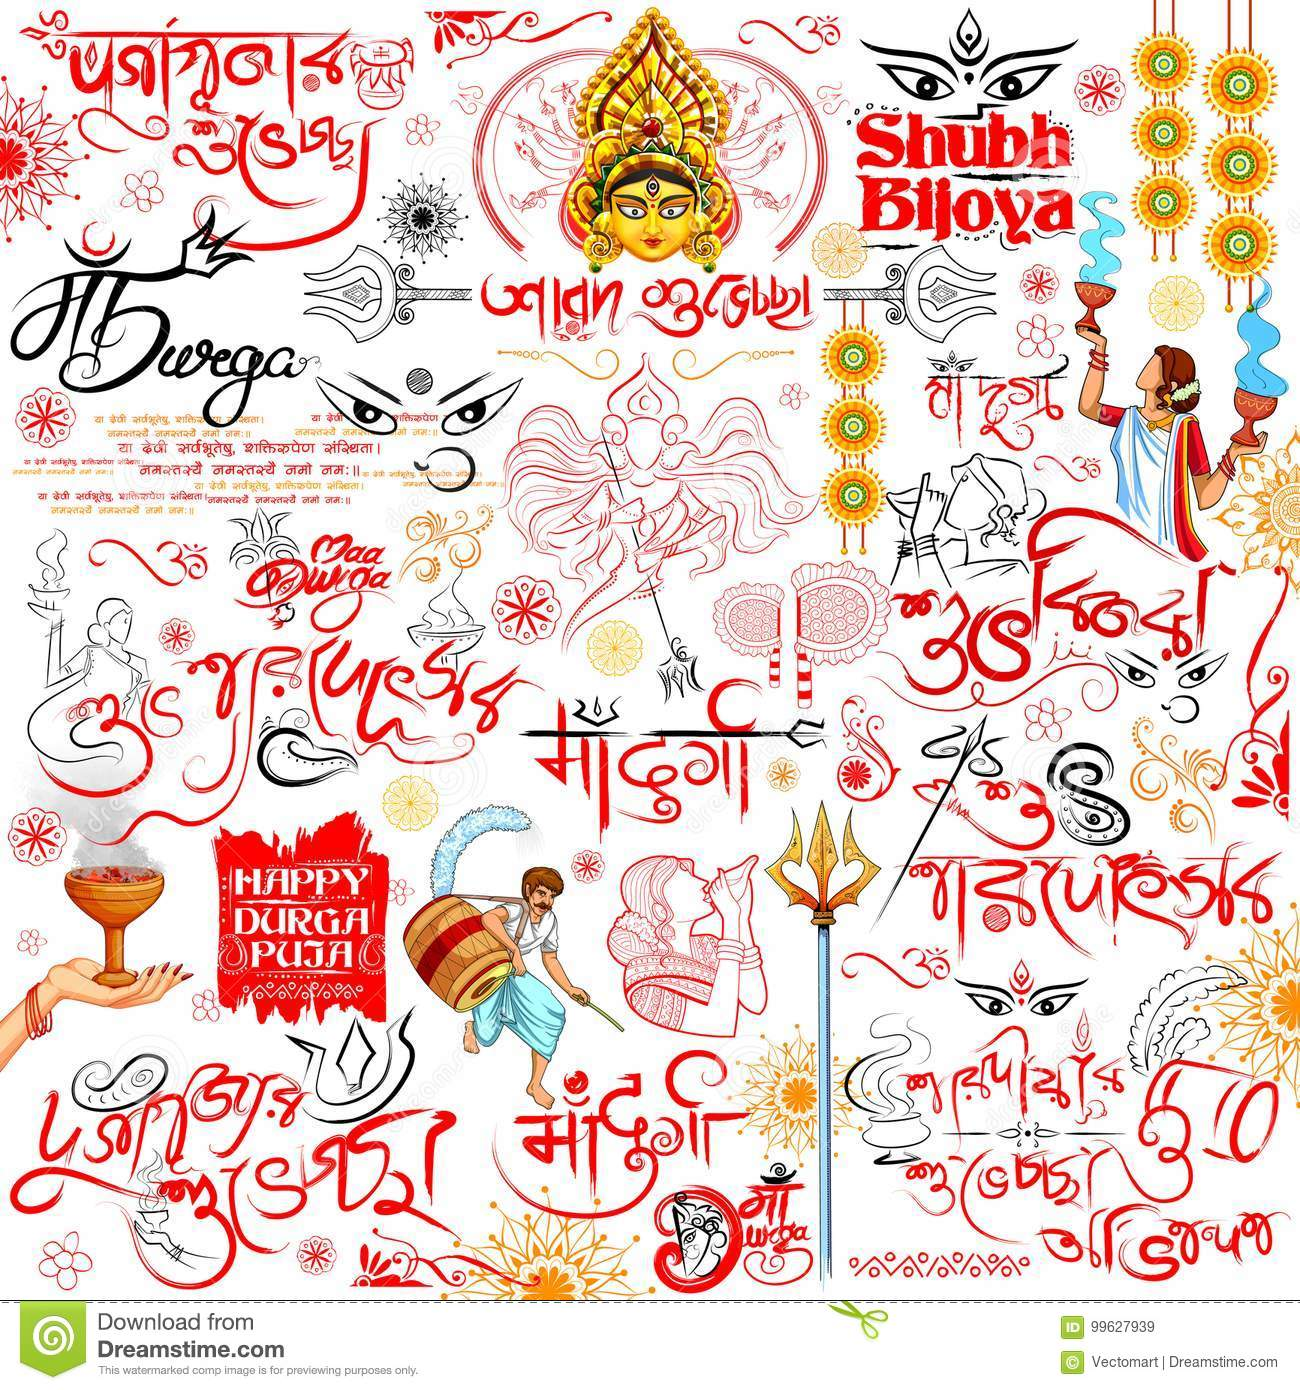 Goddess Durga In Happy Dussehra Background With Bengali